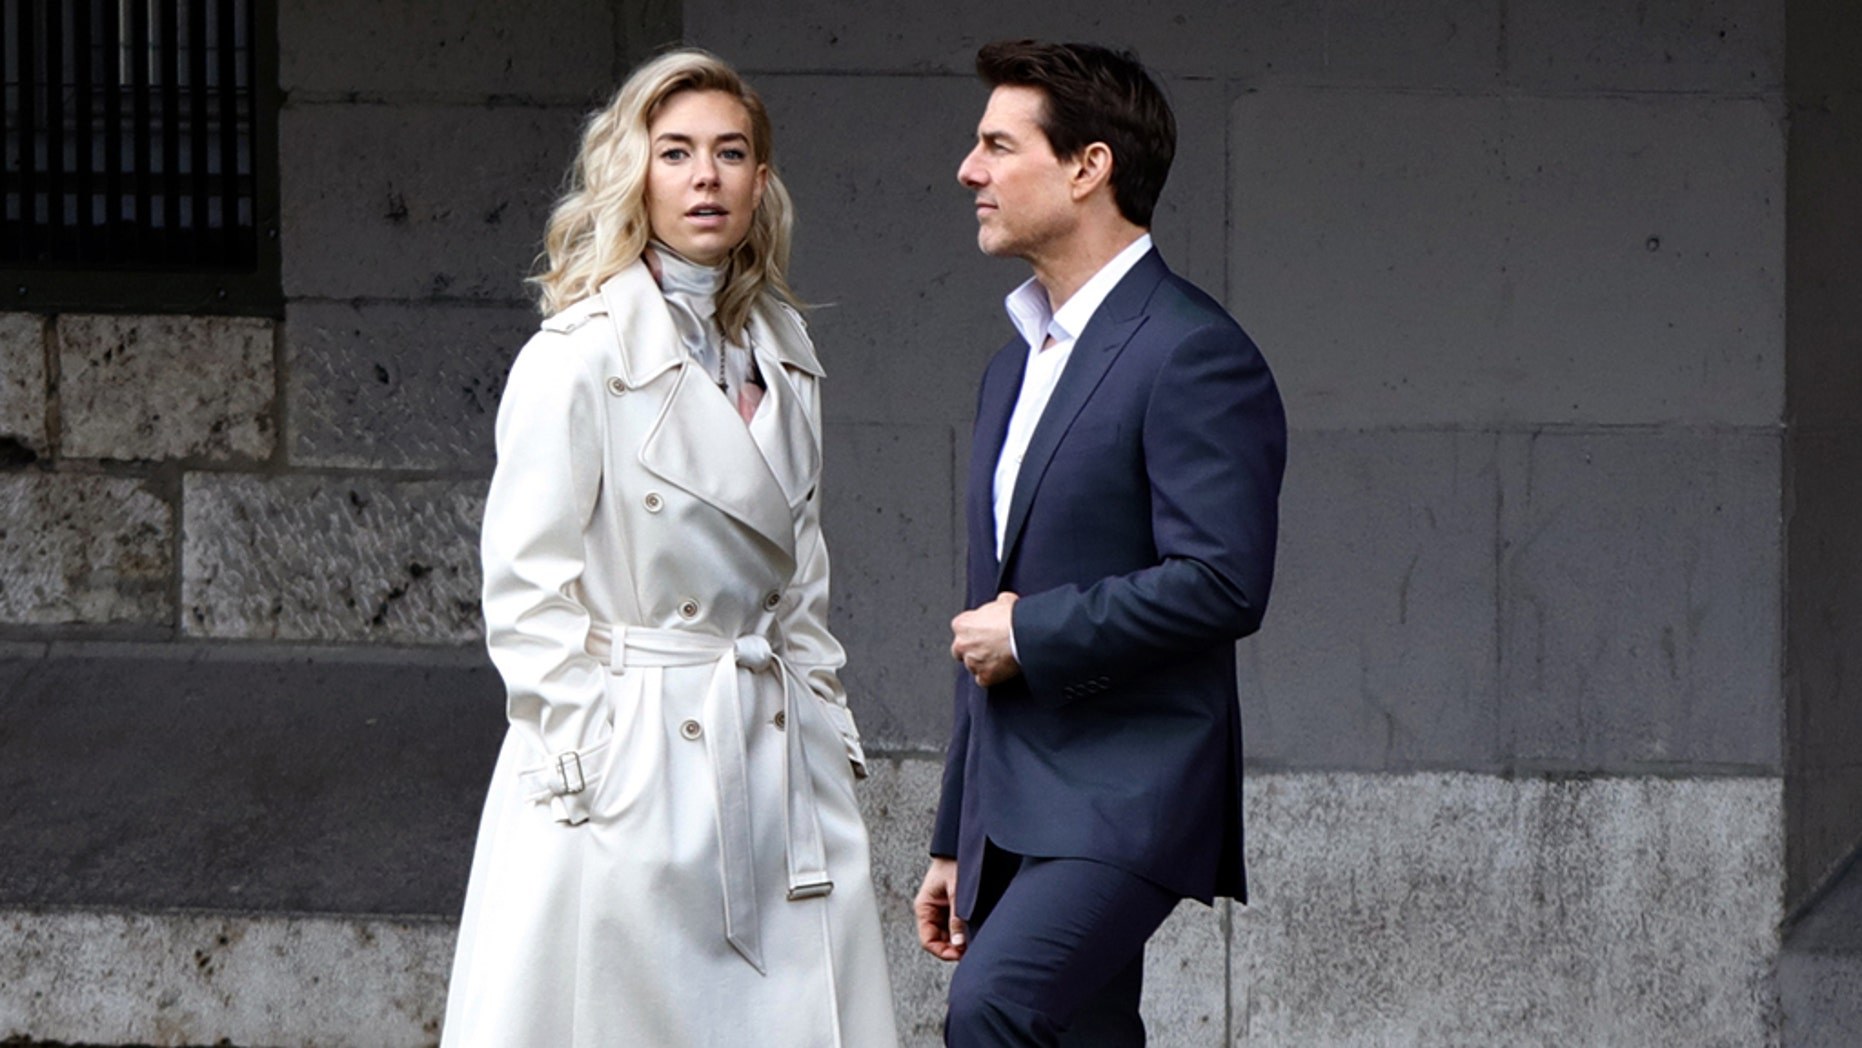 May 2, 2017 - Paris, France - Tom Cruise seen kissing Vanessa Kirby during a scene for 'Mission Impossible 6' in Paris, France, on May 2, 2017. (Credit Image: © Mehdi Taamallah/NurPhoto via ZUMA Press)